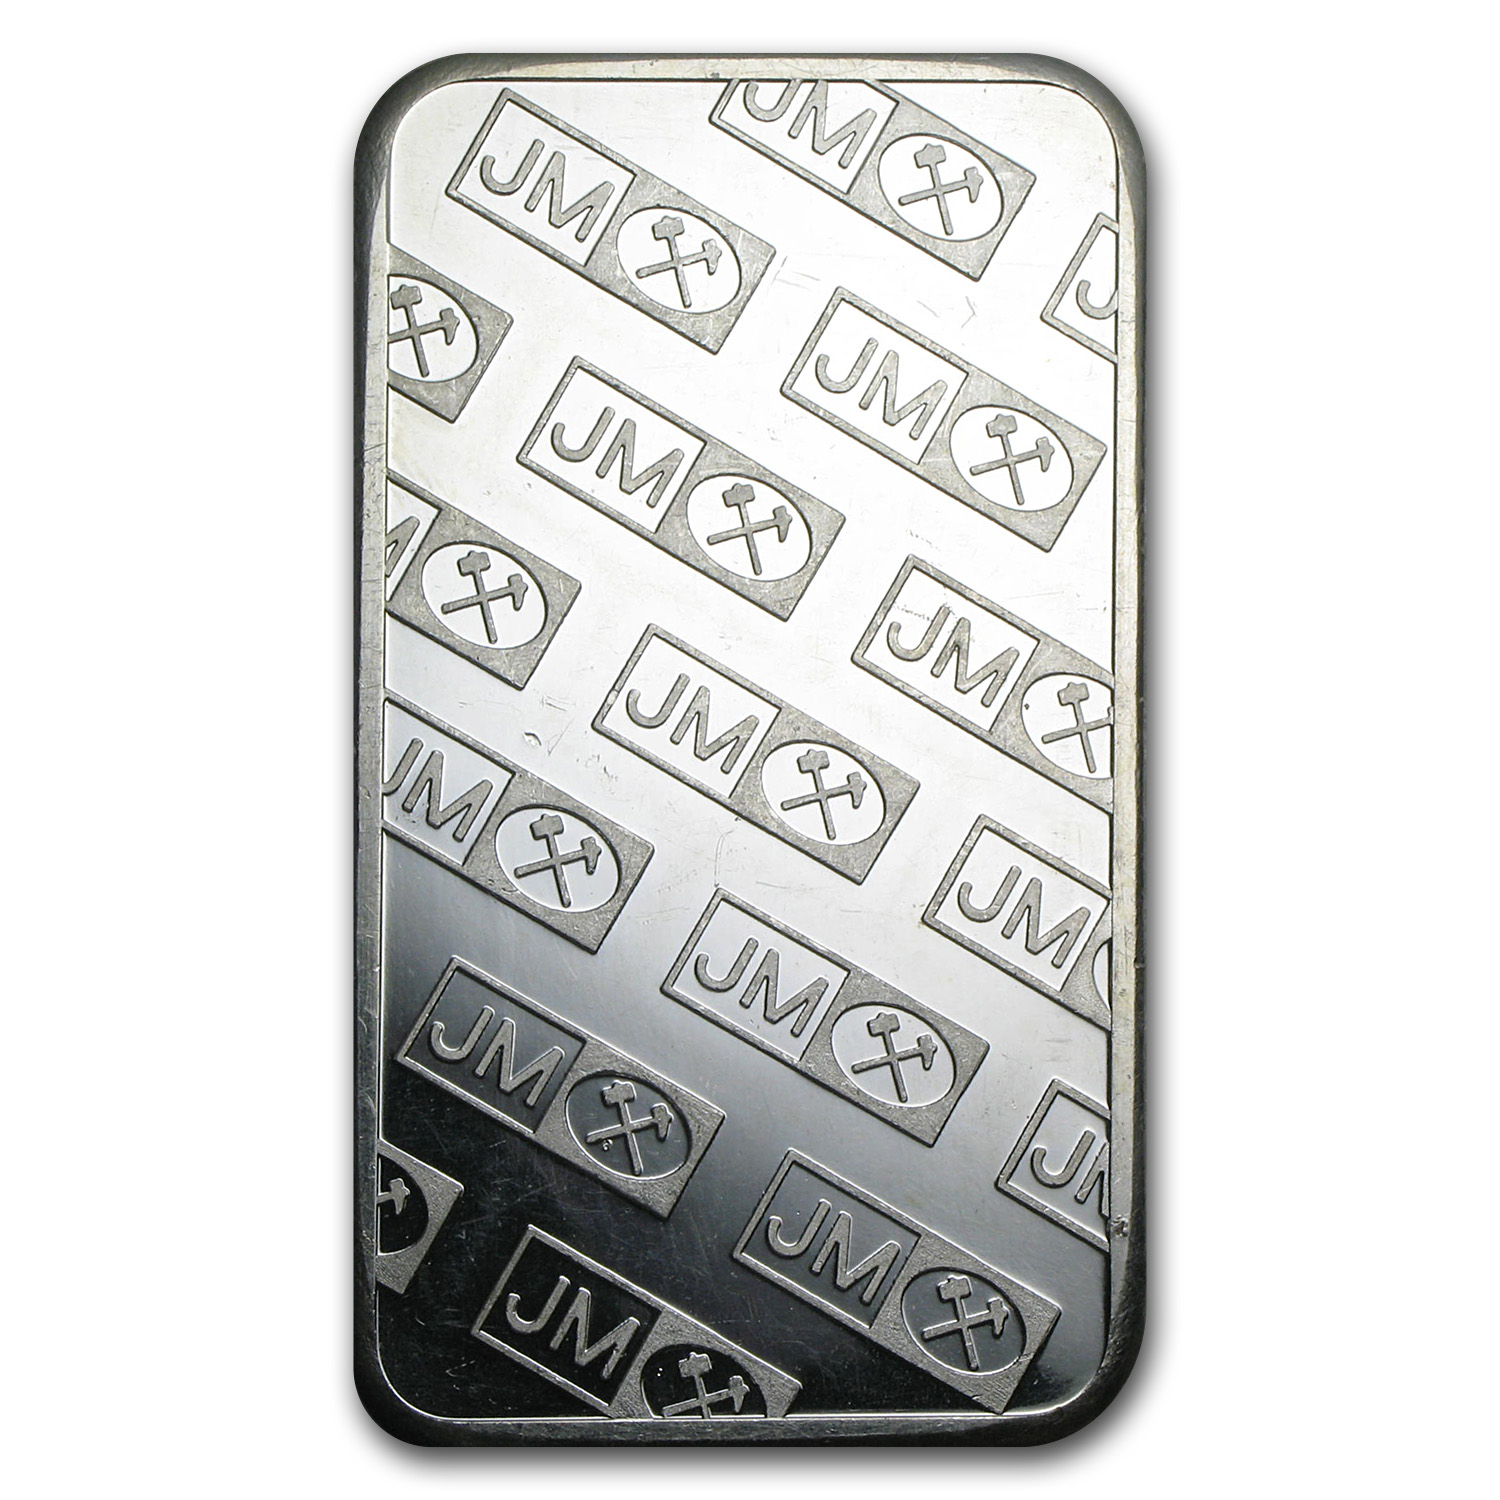 5 oz Silver Bar - Johnson Matthey (Pressed/JM logo)